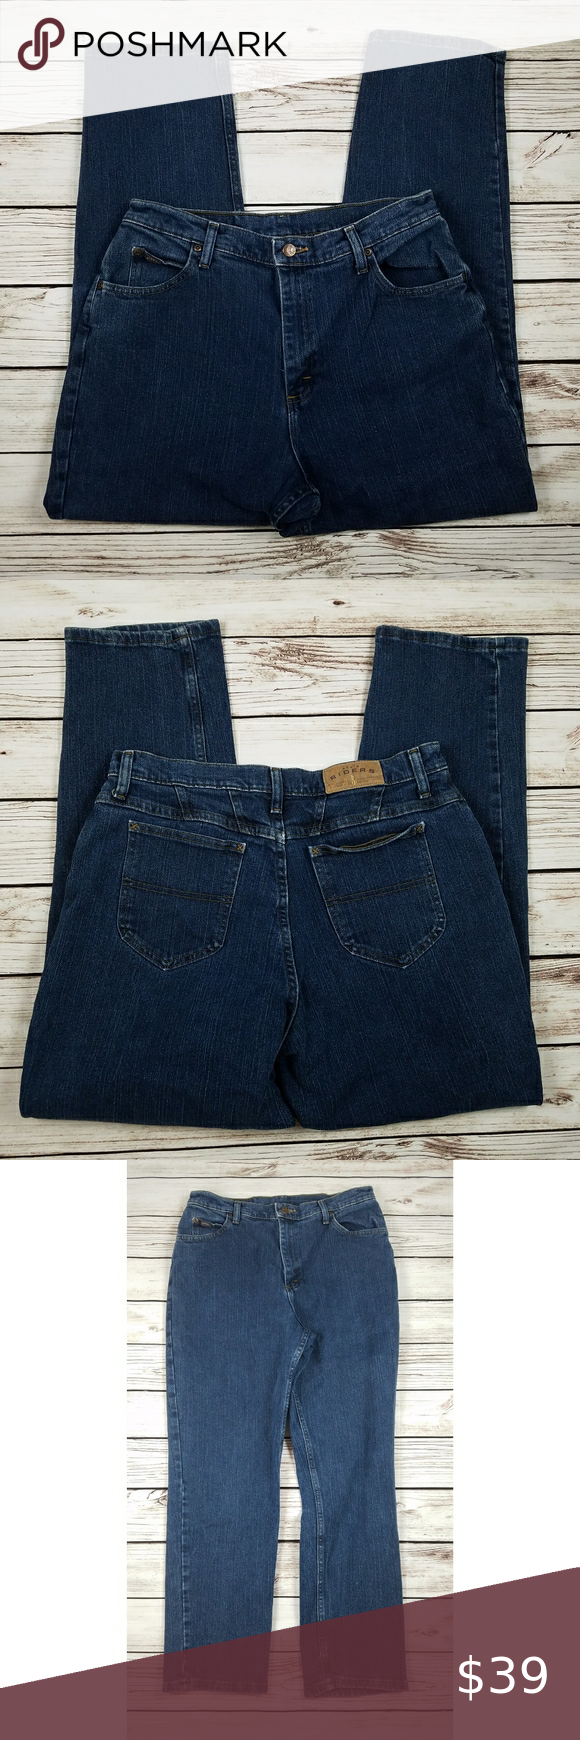 Vintage Riders High Waisted Tapered Mom Jeans - Size 16P - Medium Wash - High Rise - Excellent Used Condition  - Waist: 32